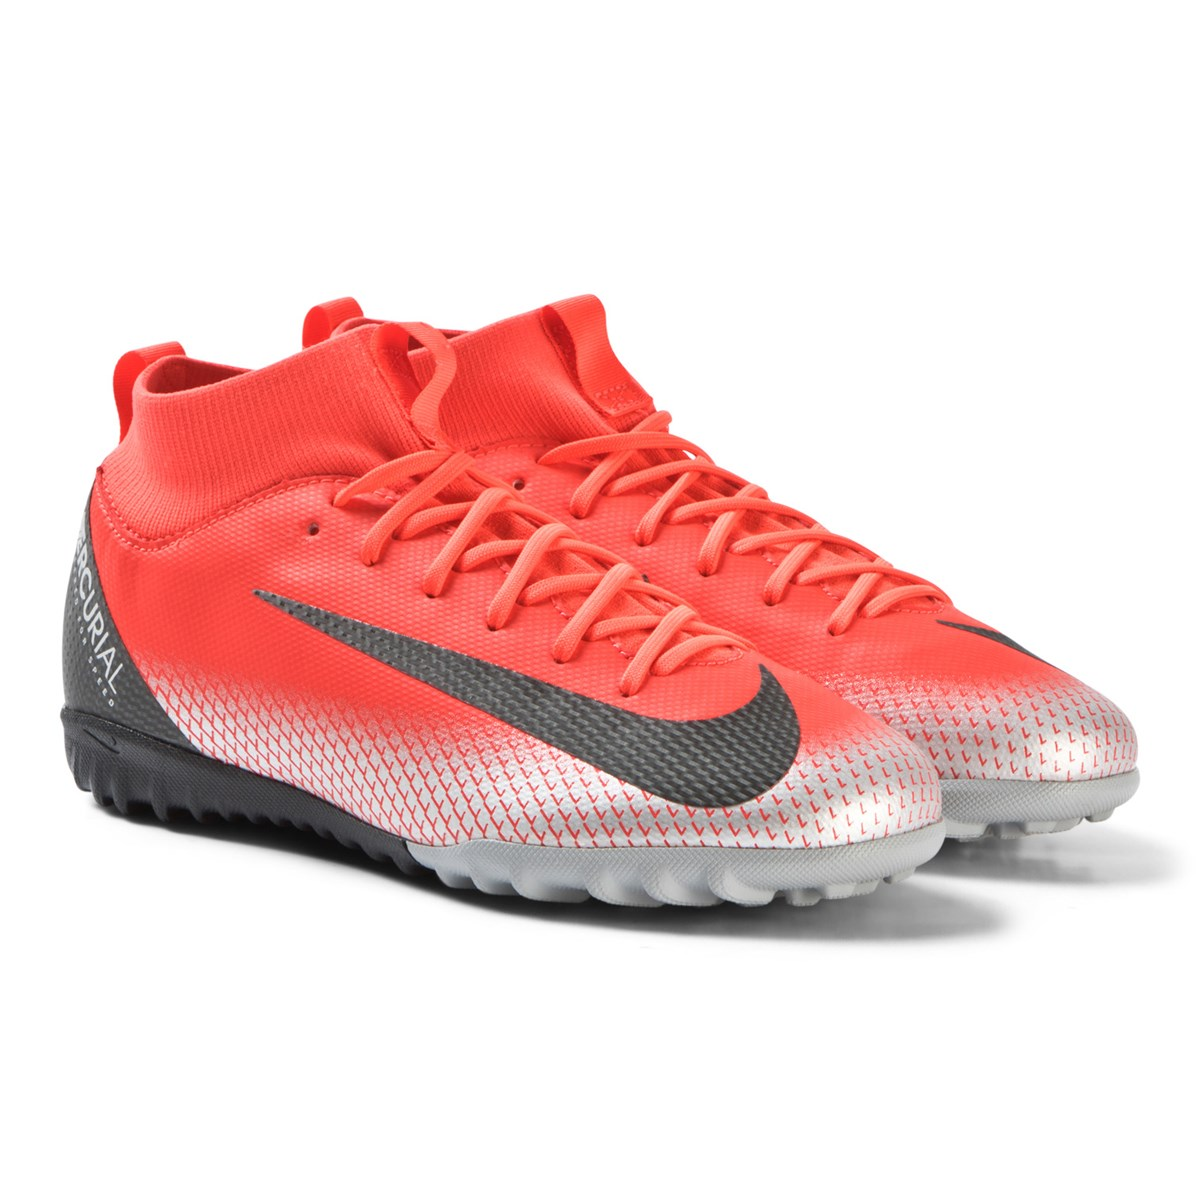 red cr7 boots